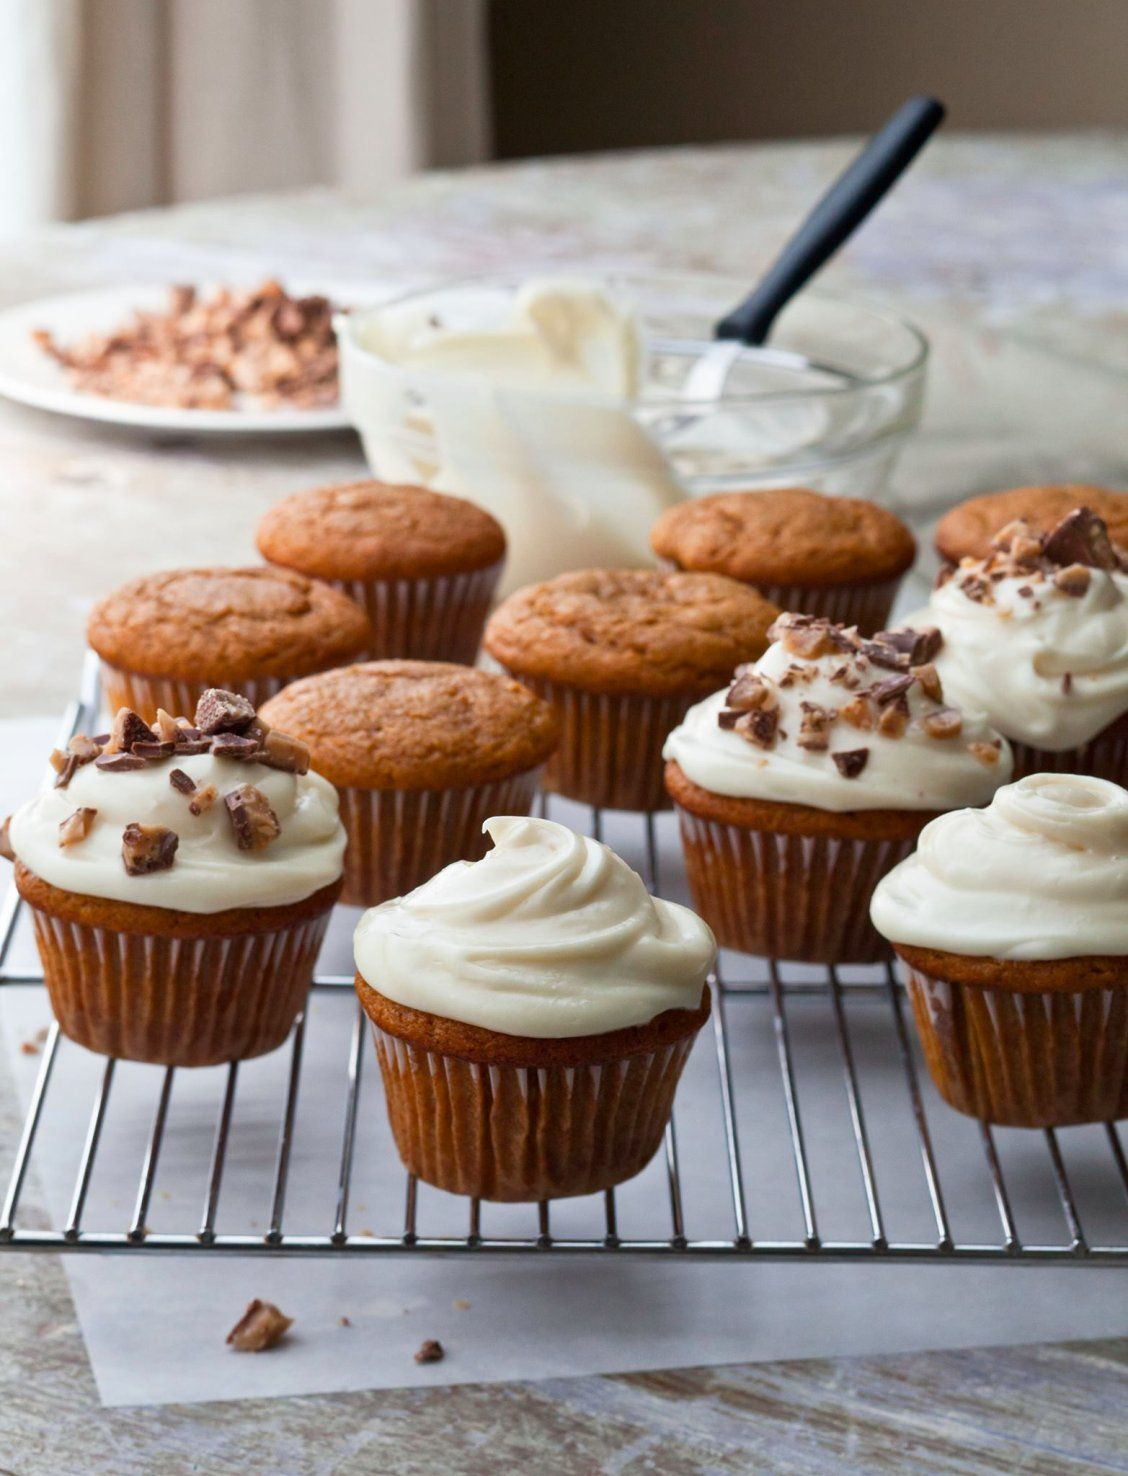 Barefoot Contessa Pumpkin Muffins Pumpkin Spice Cupcakes With Maple Frosting